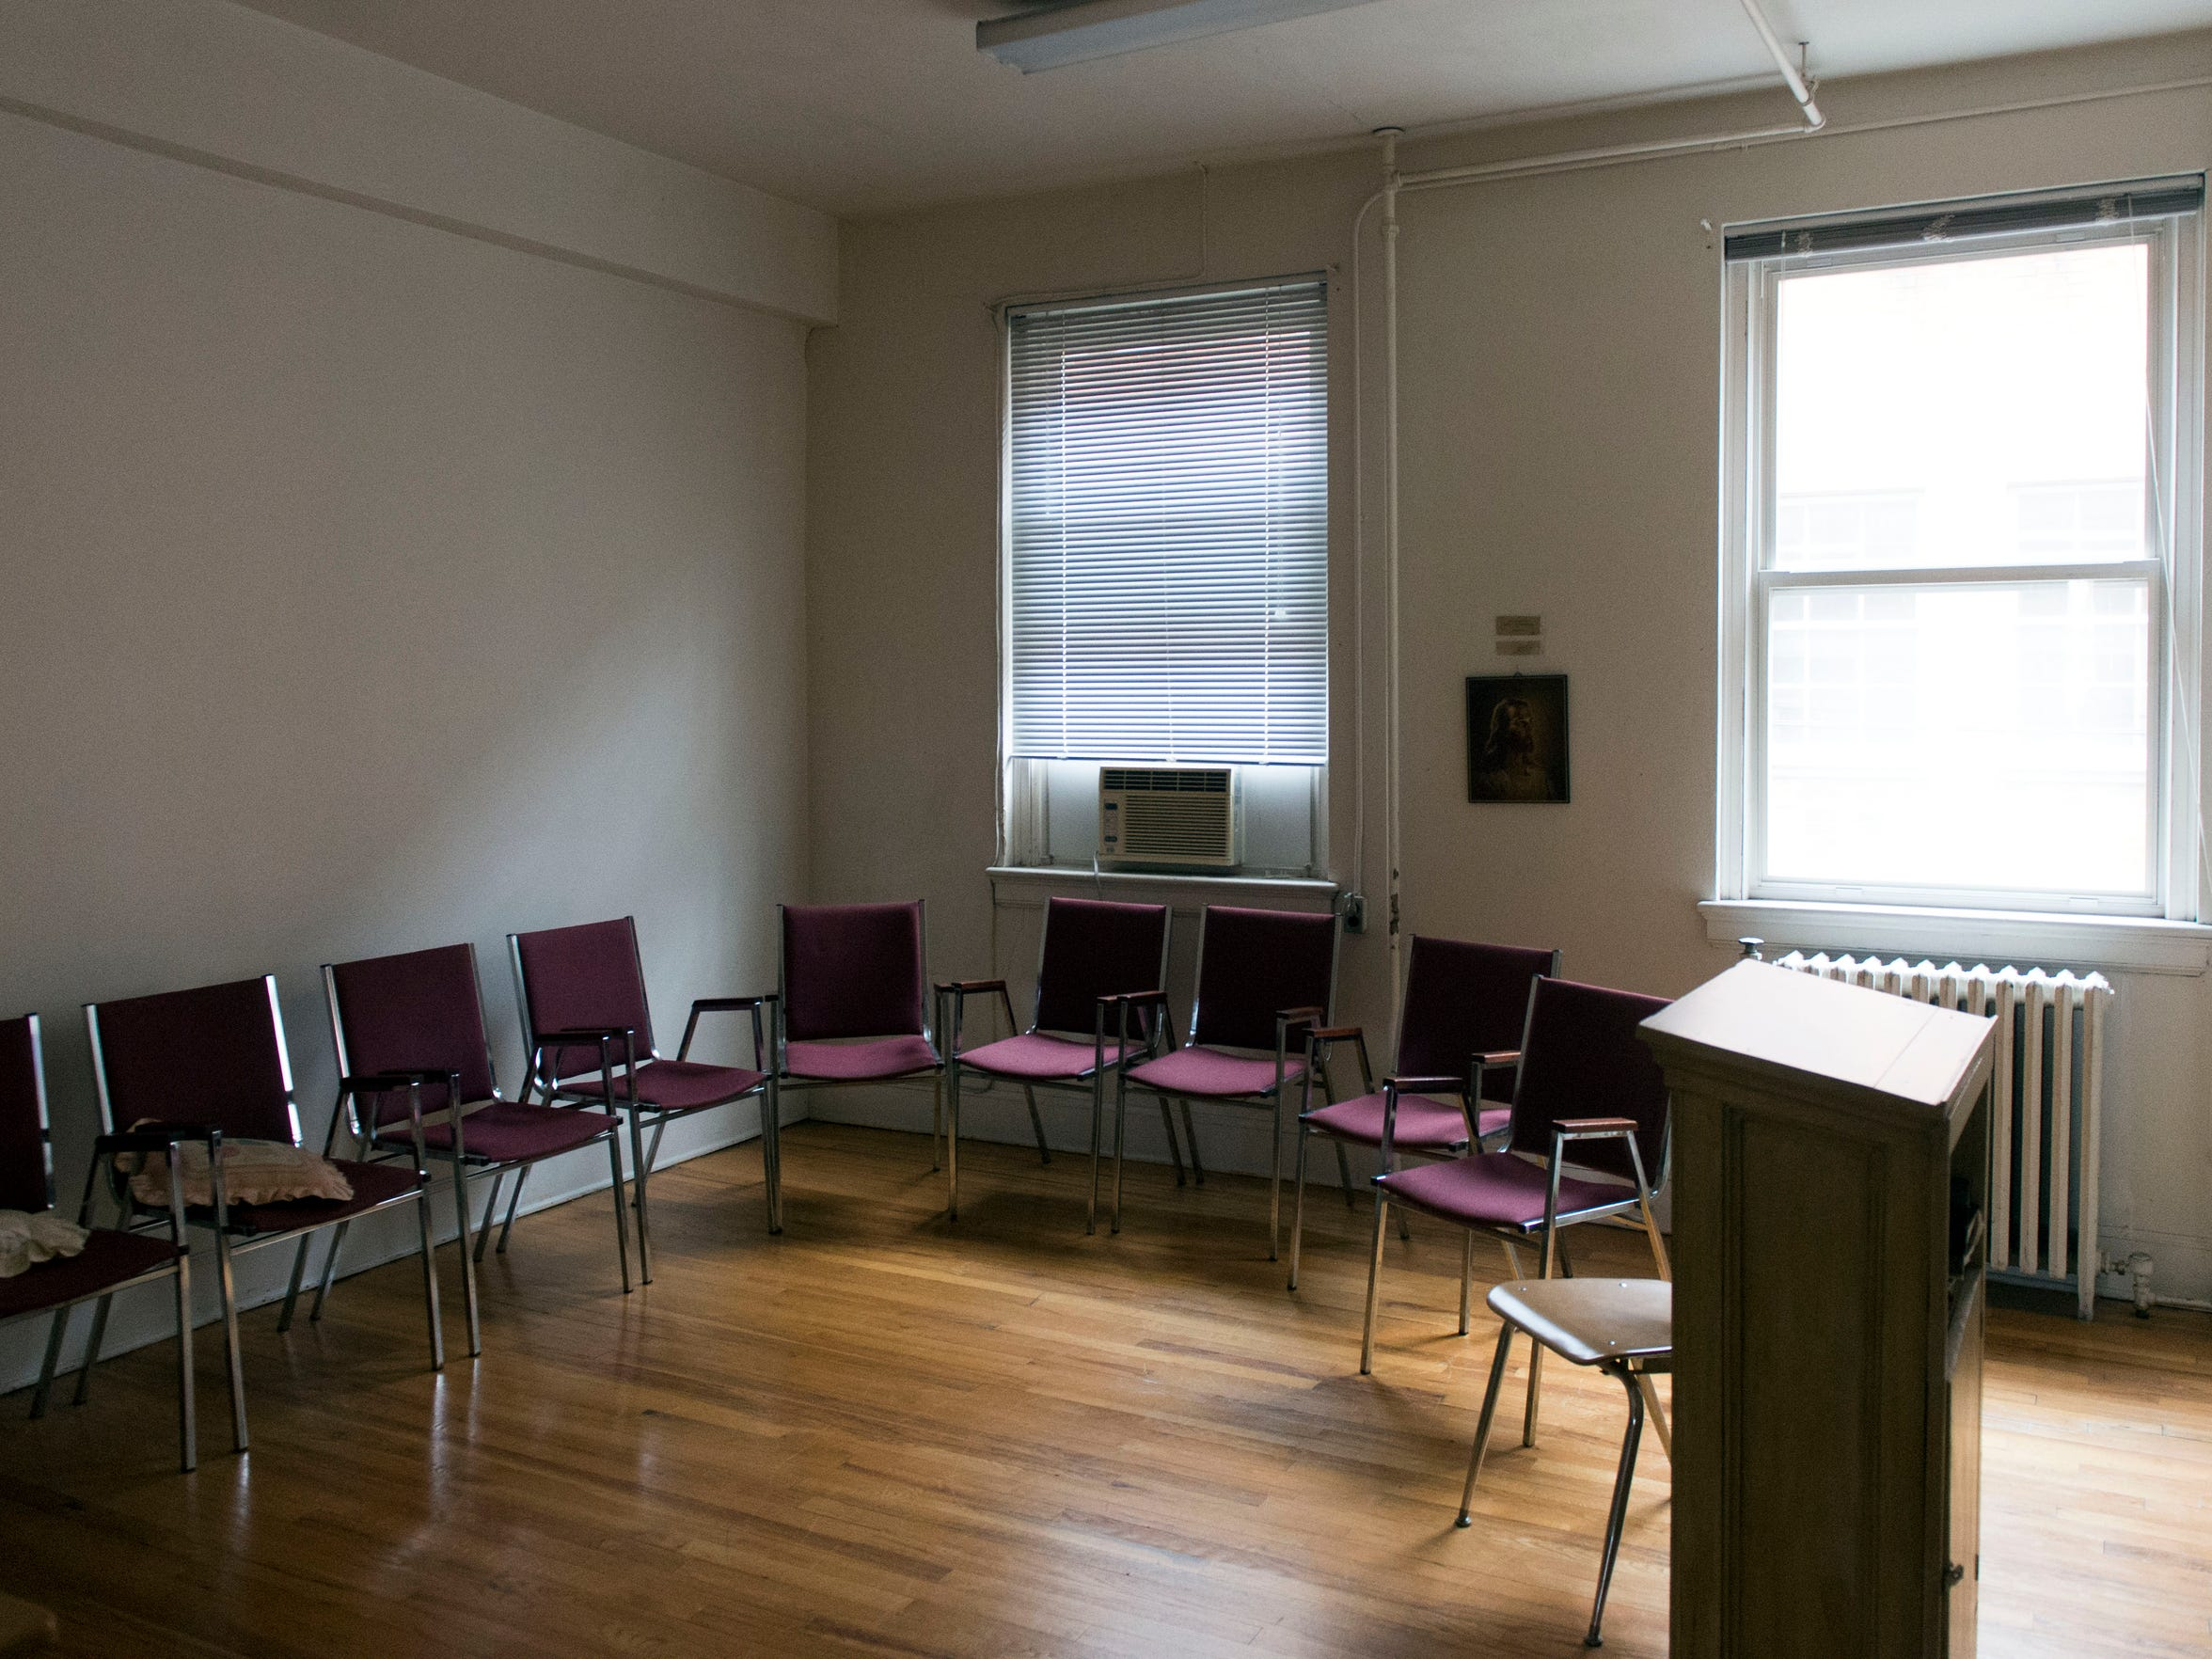 One of the Sunday School rooms at Fifth Ave. Baptist Church.